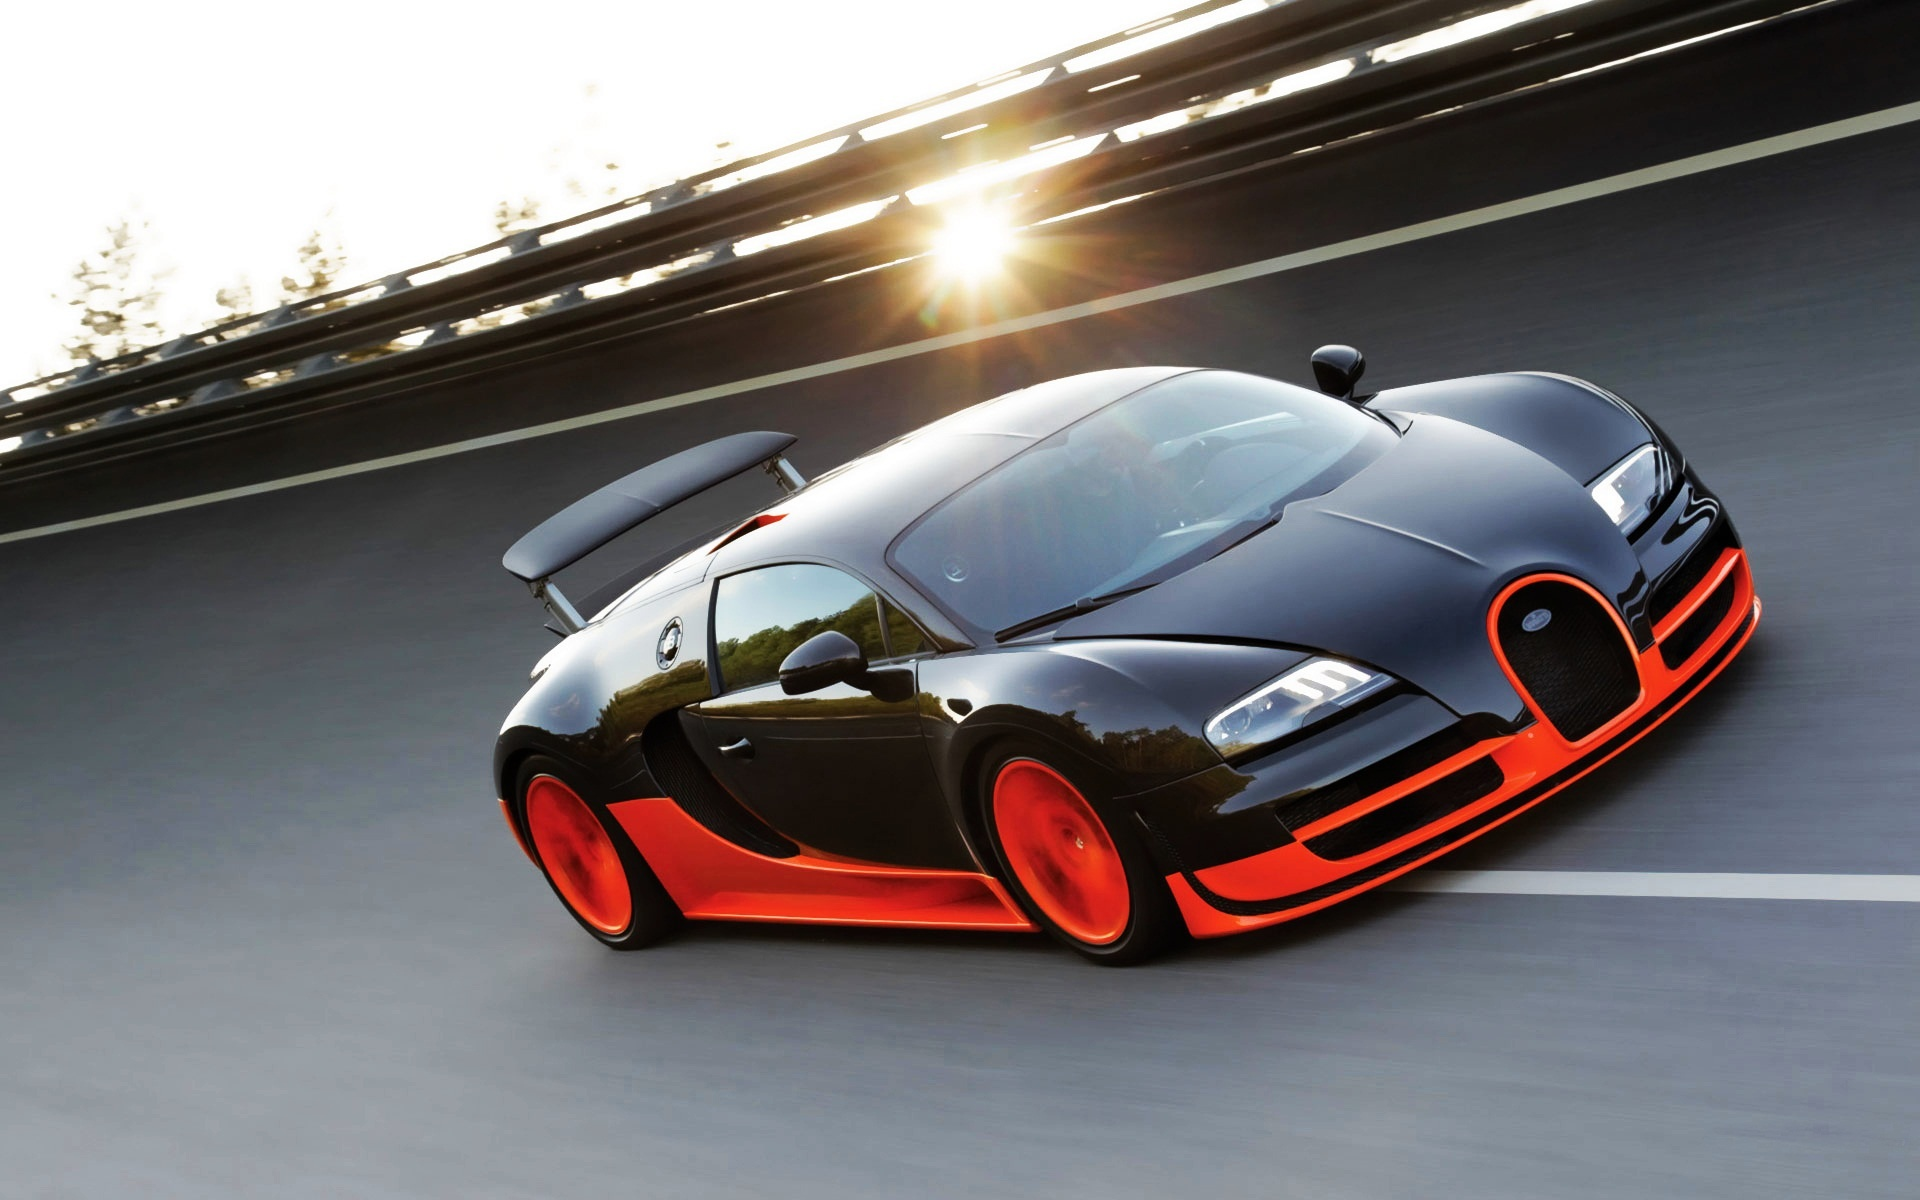 Bugatti Veyron Super Sport Wallpaper 1920x1200